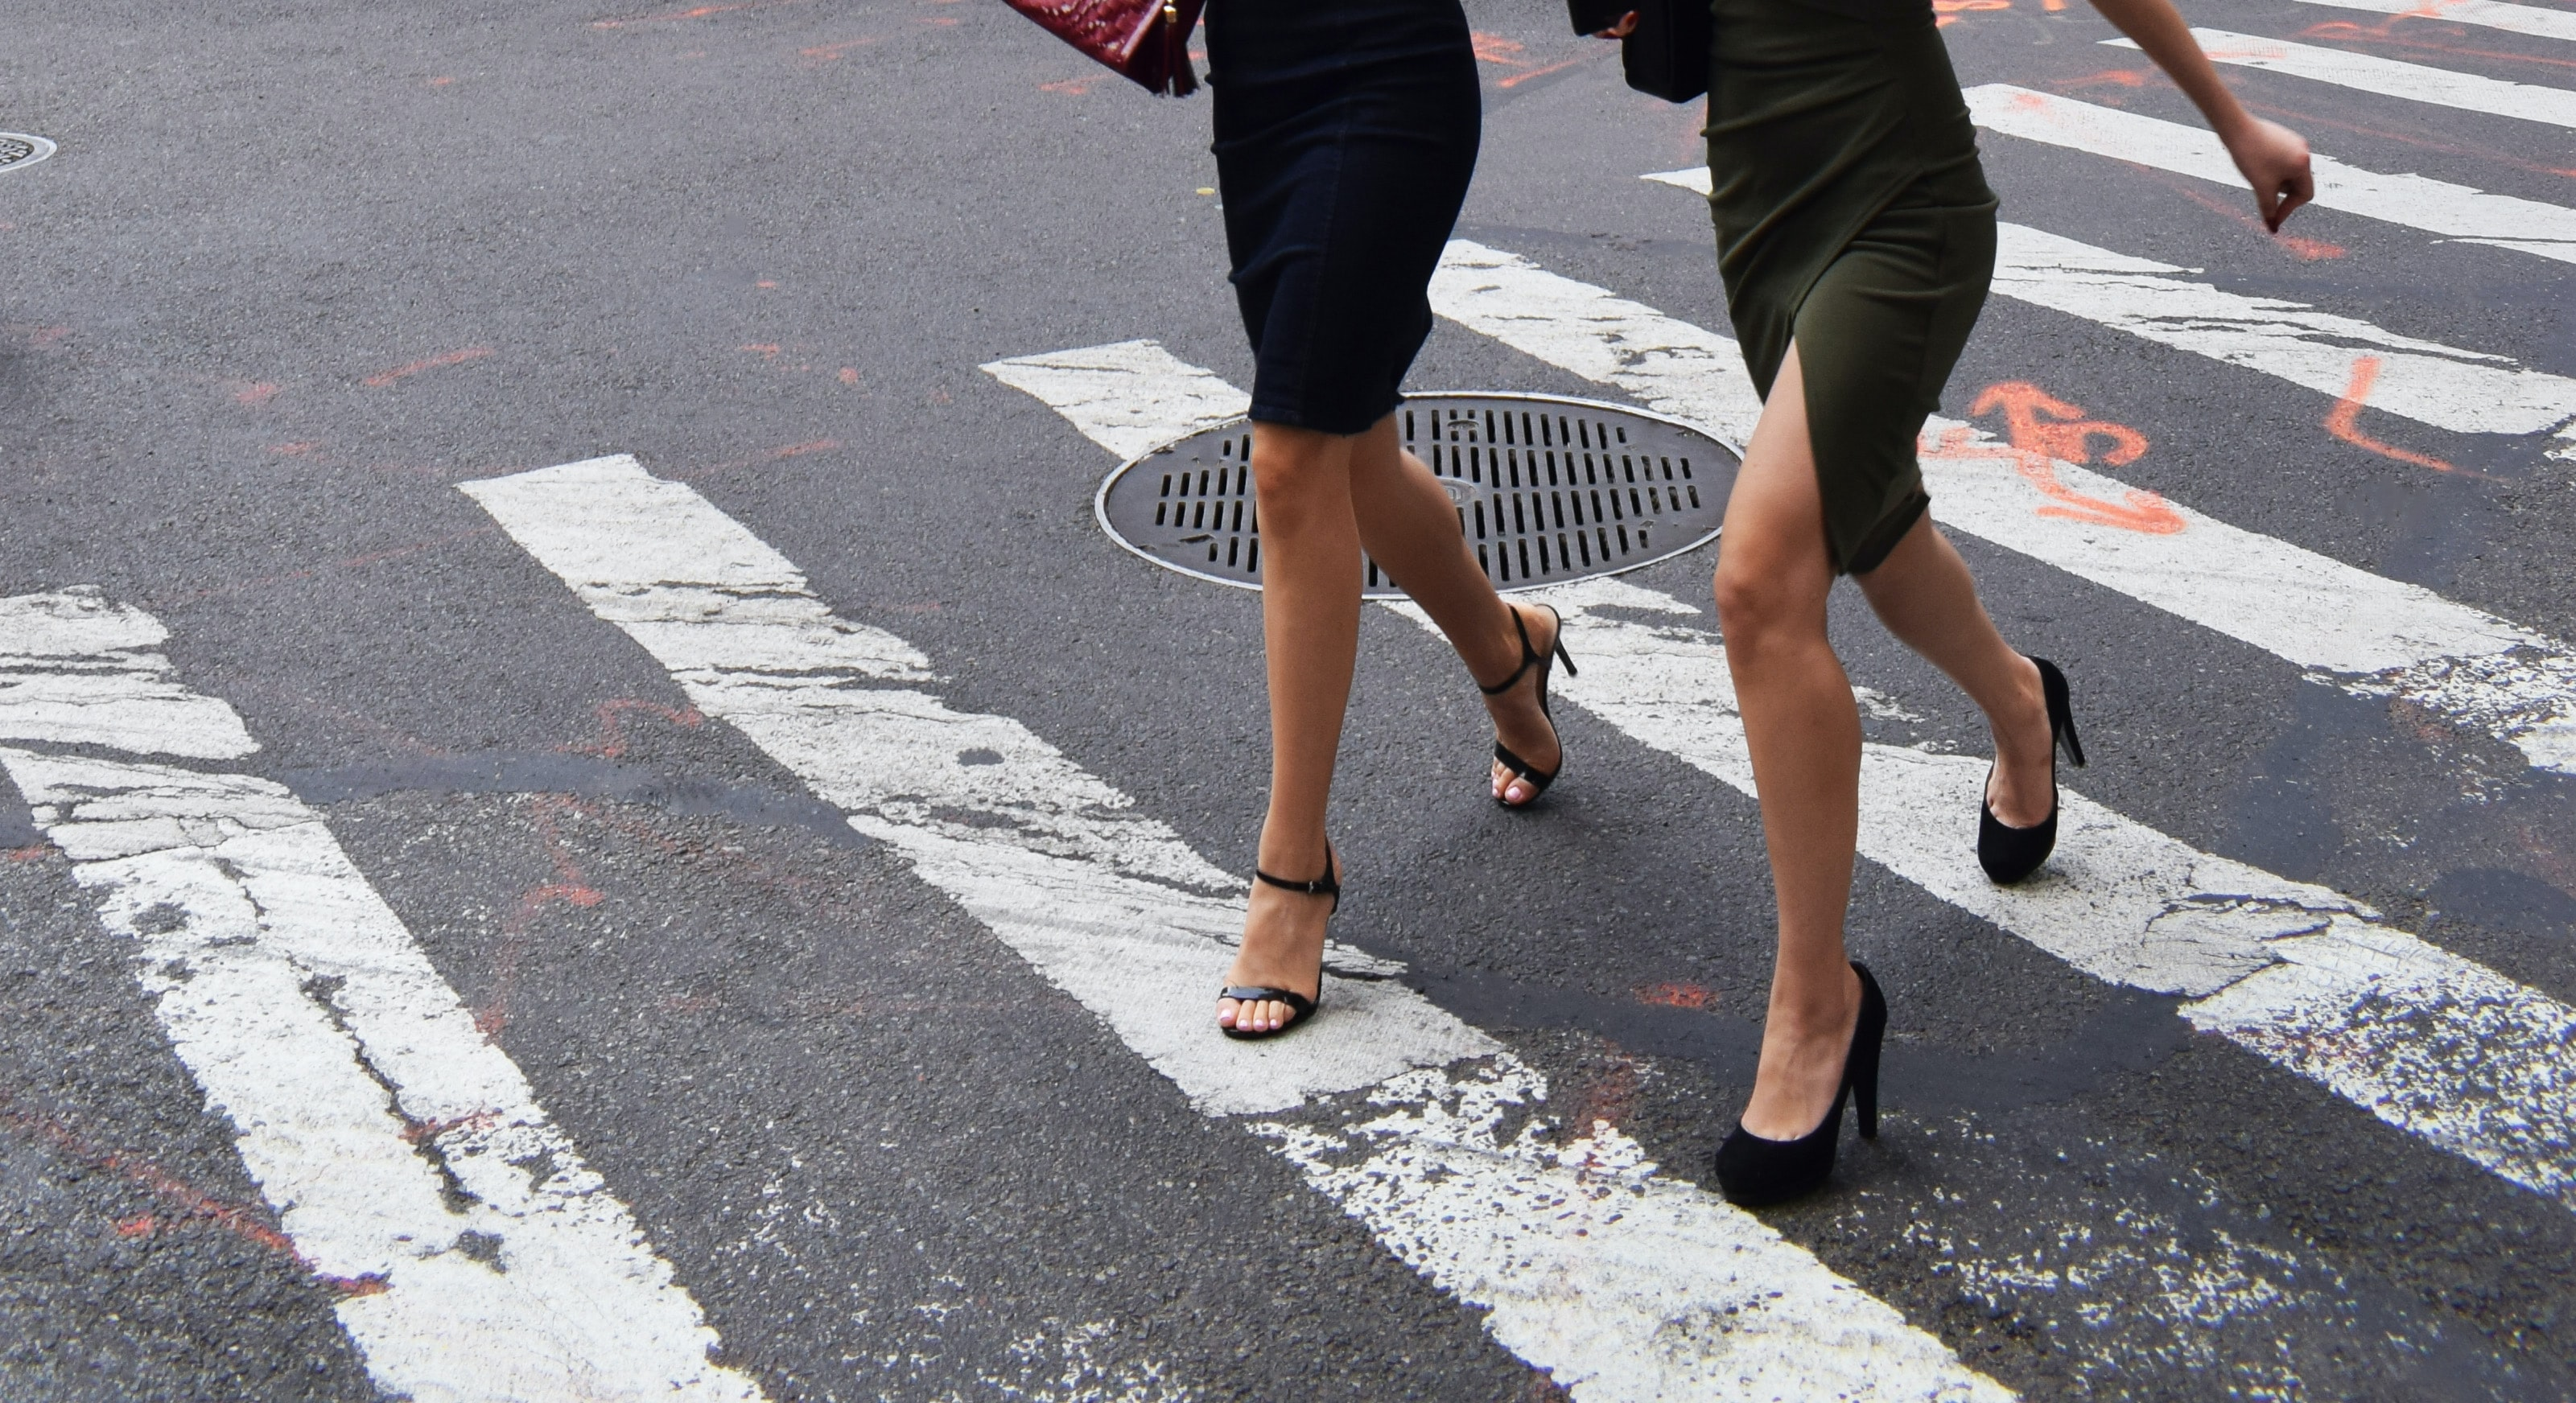 two women walking on pedestrian lane